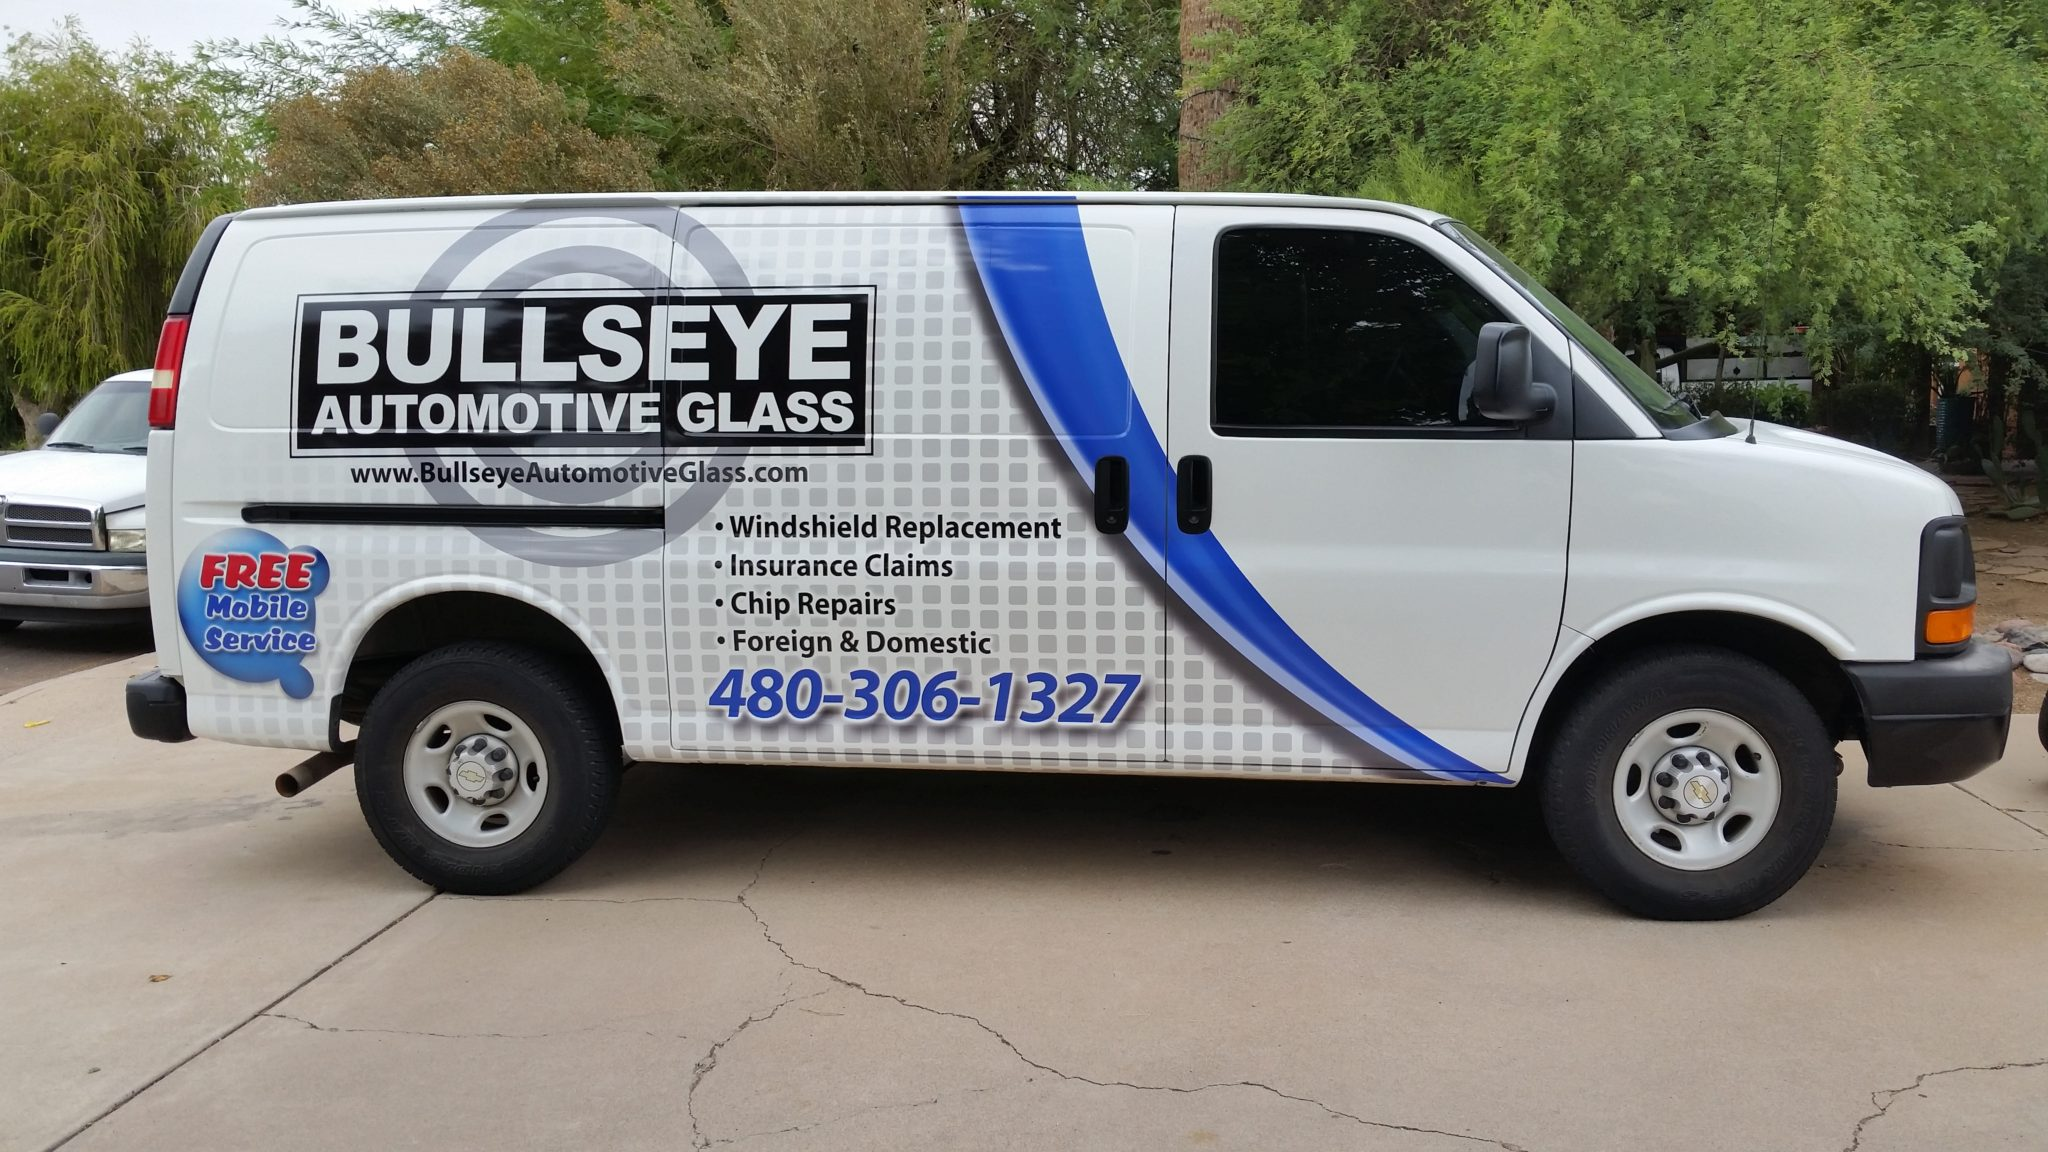 Auto Glass Repair greater Phoenix – Mobile Auto Glass Replacement Phoenix – Bullseye Automotive Glass Phoenix